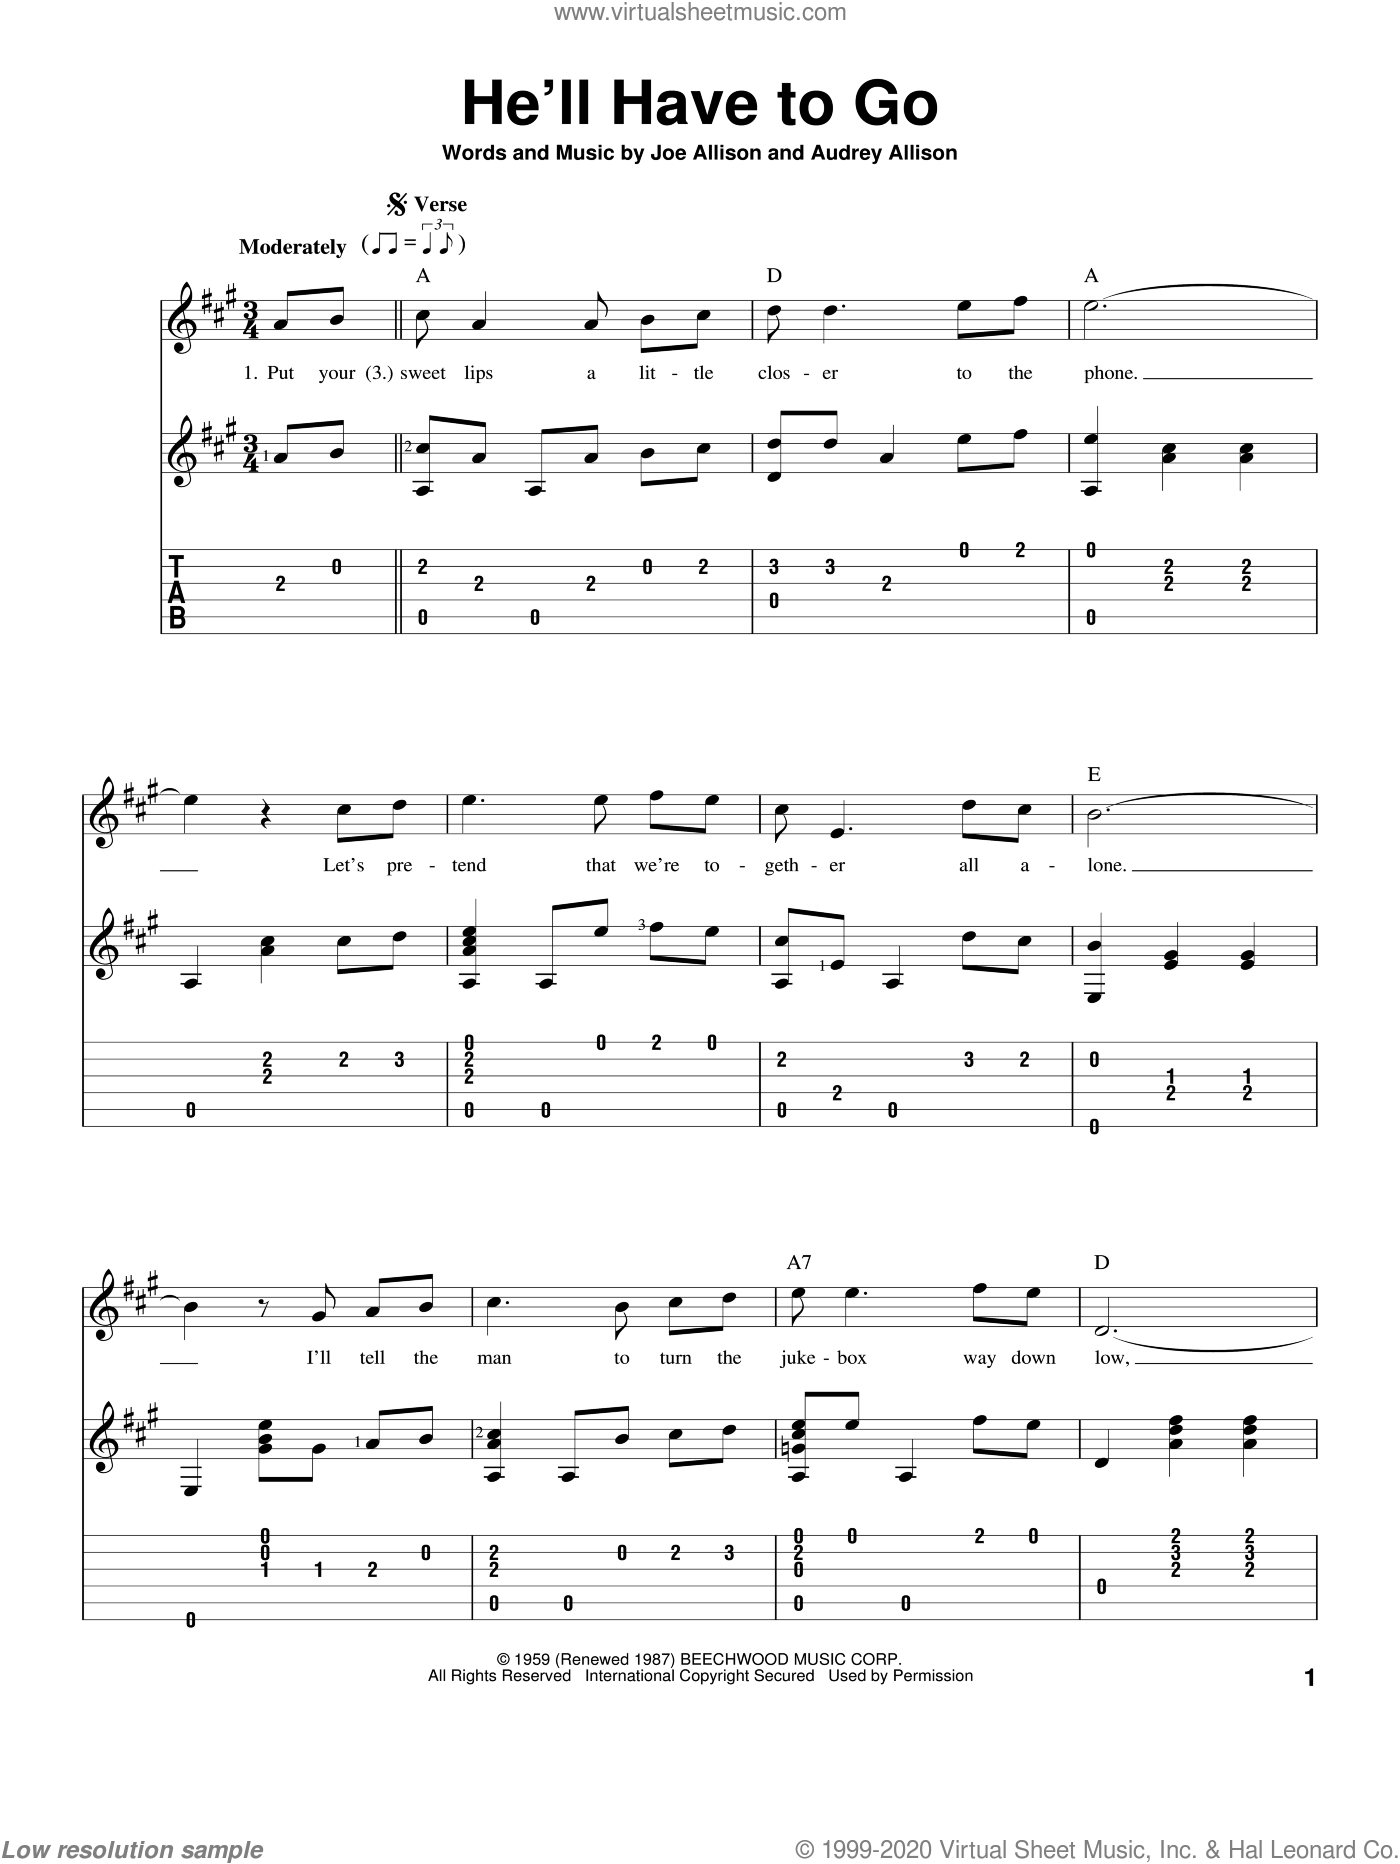 He'll Have To Go sheet music for guitar solo by Joe Allison. Score Image Preview.